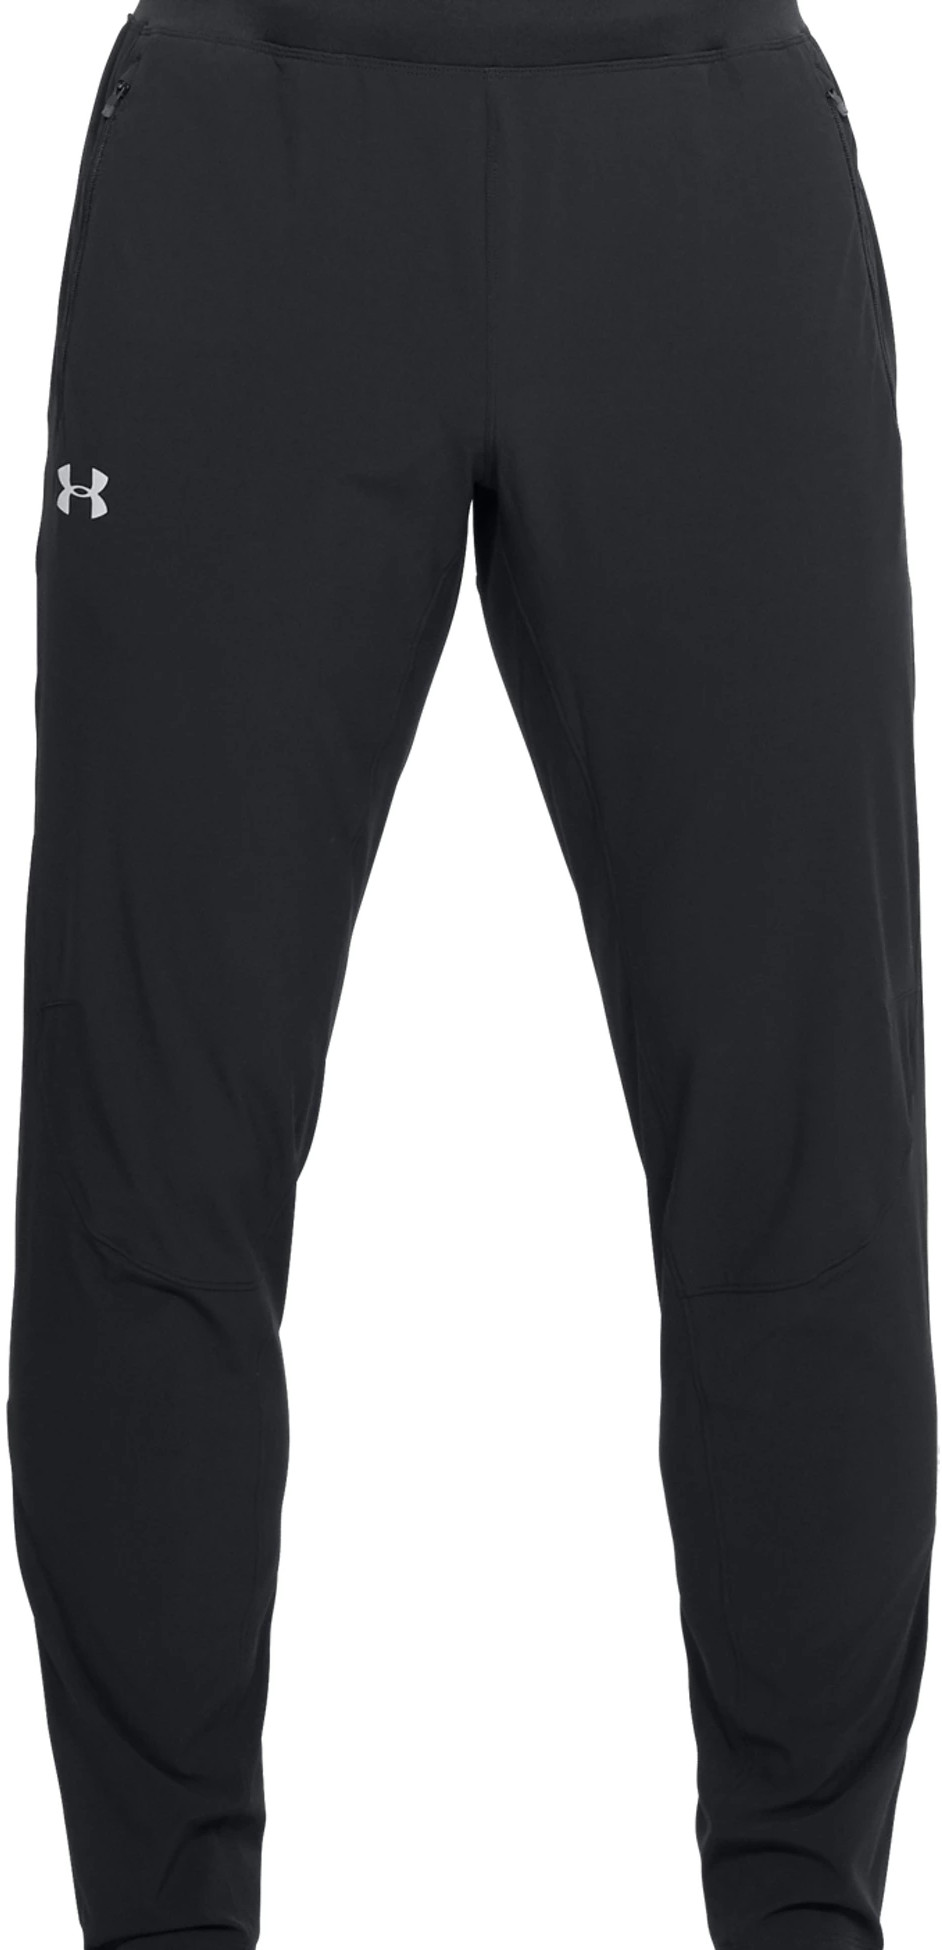 Nohavice Under Armour OUTRUN THE STORM SP PANT